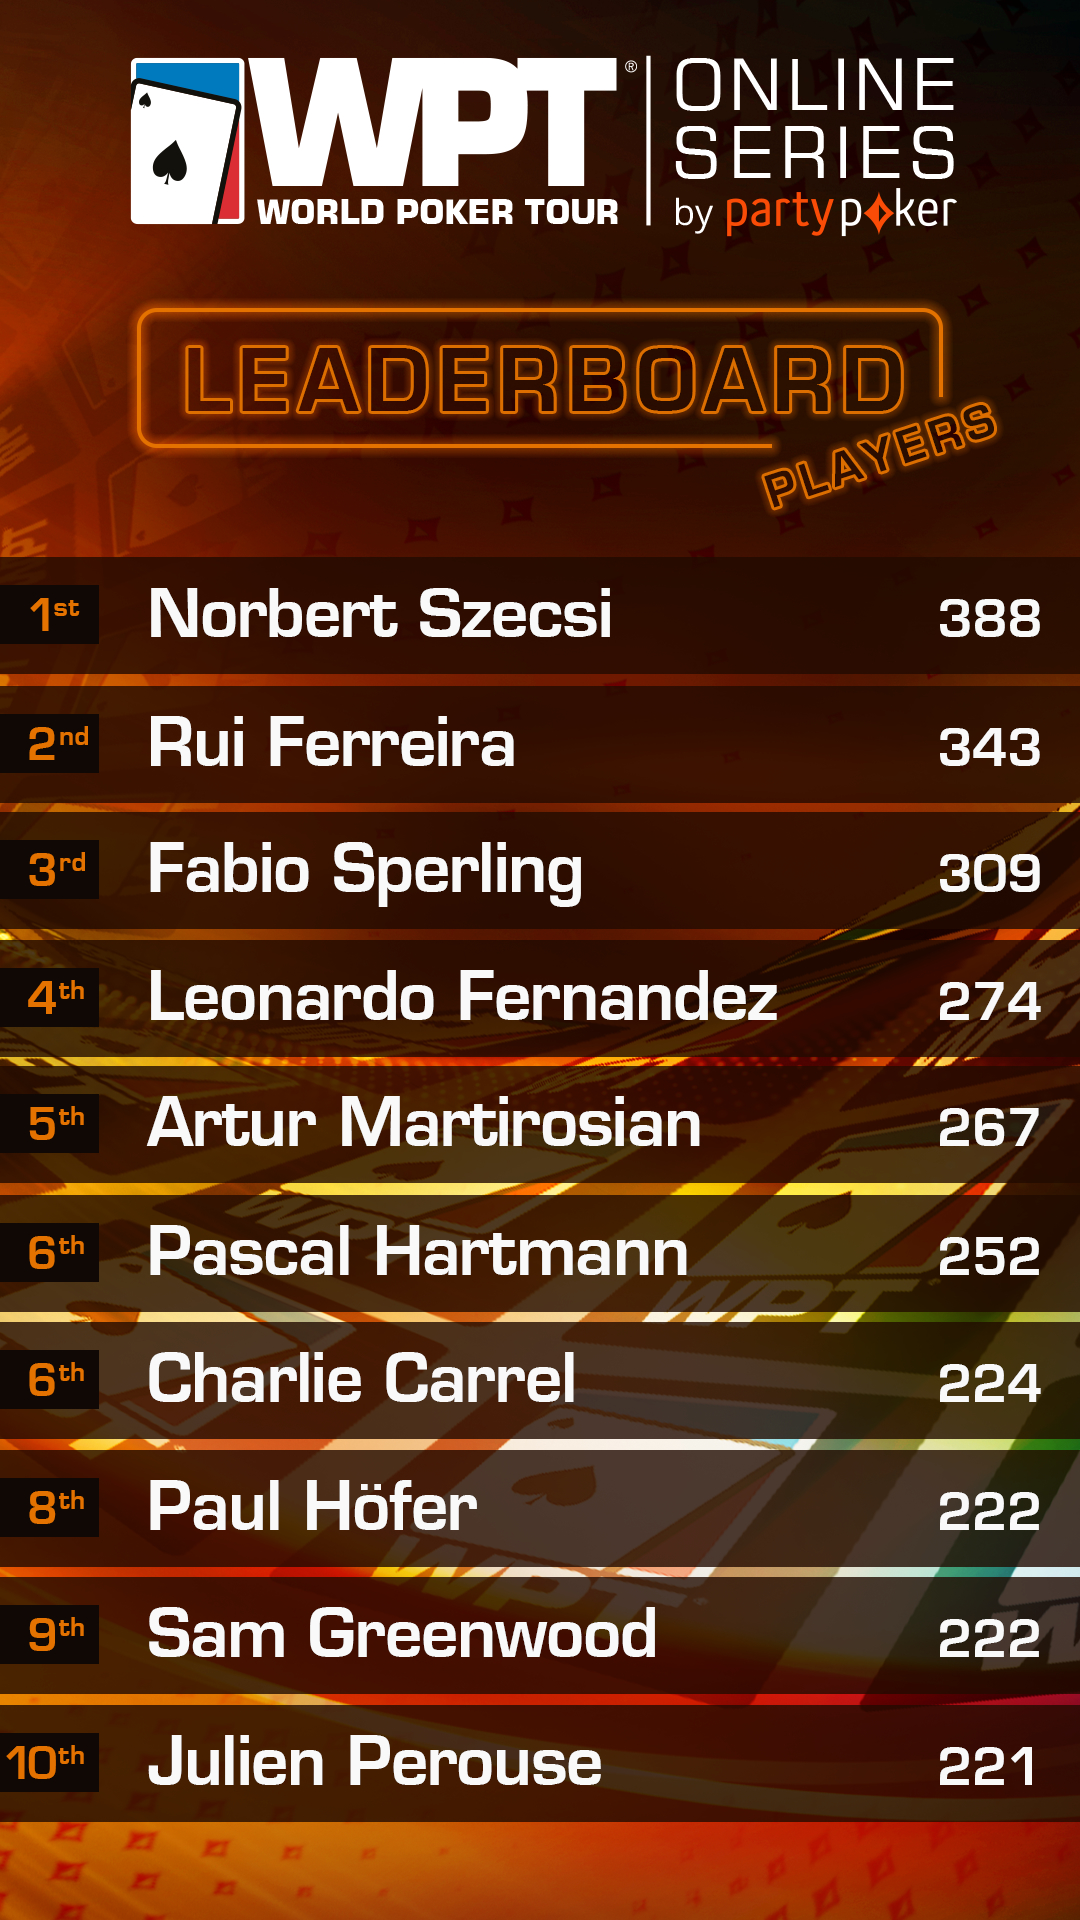 WPT Leaderboard 14 May